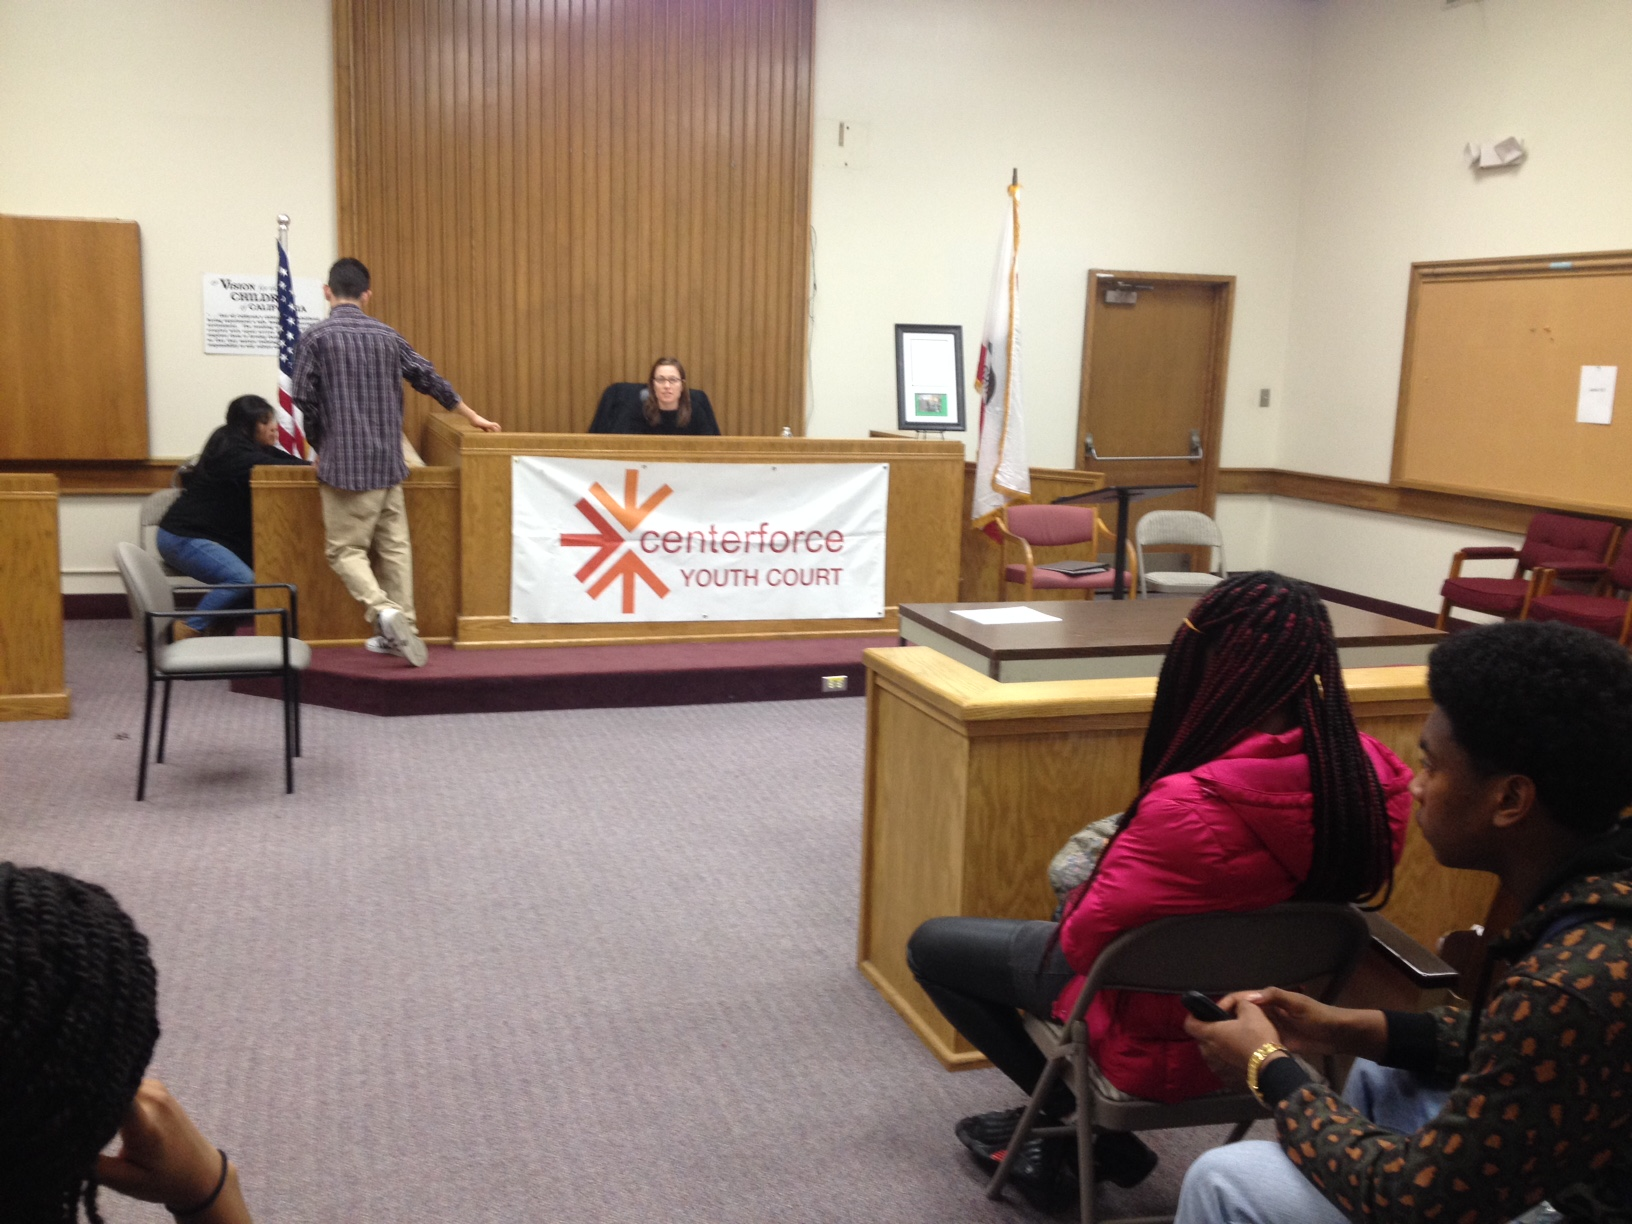 Centerforce Youth Court in Oakland serves offenders charged with first-time misdemeanors.